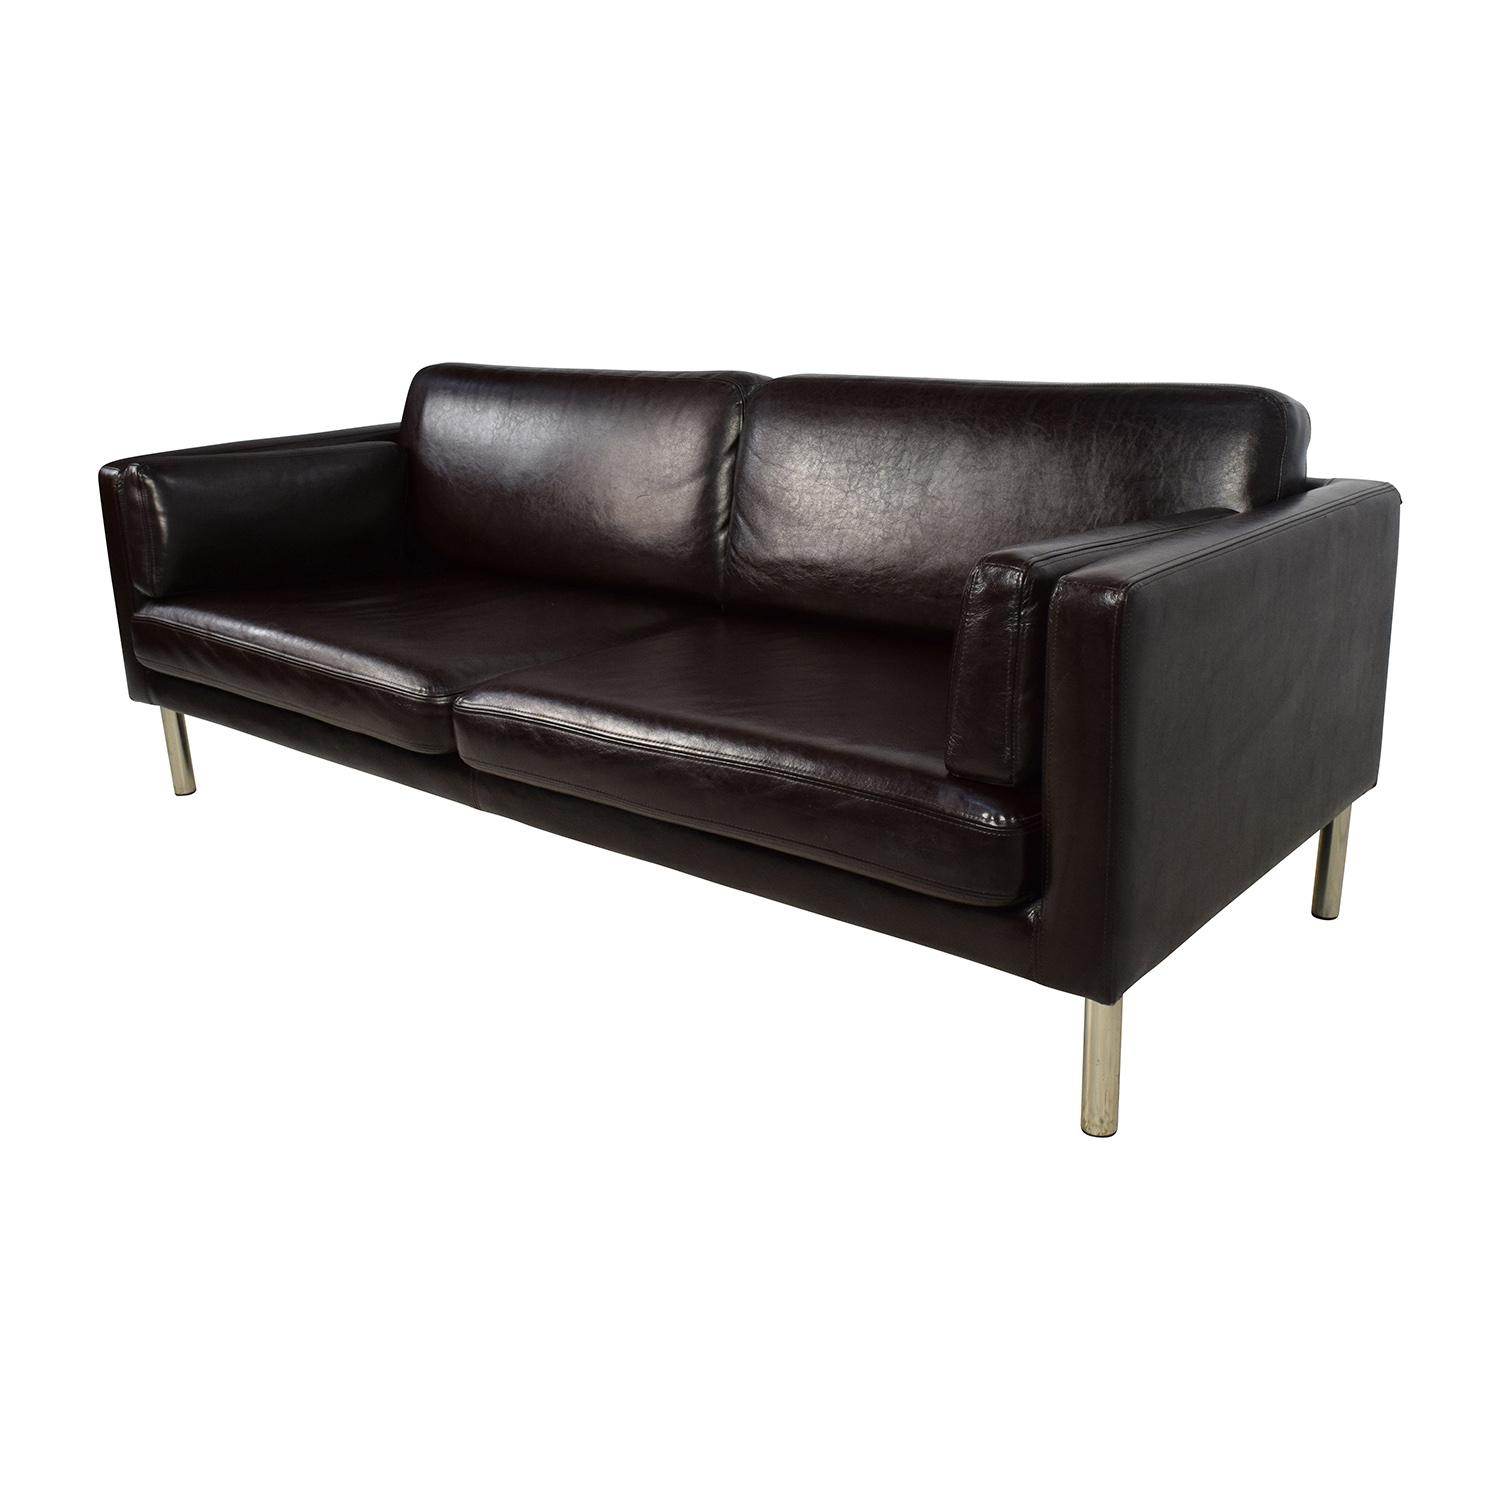 76% Off – Brown Leather Sofa With Chrome Legs / Sofas Pertaining To Sofas With Chrome Legs (Image 4 of 20)